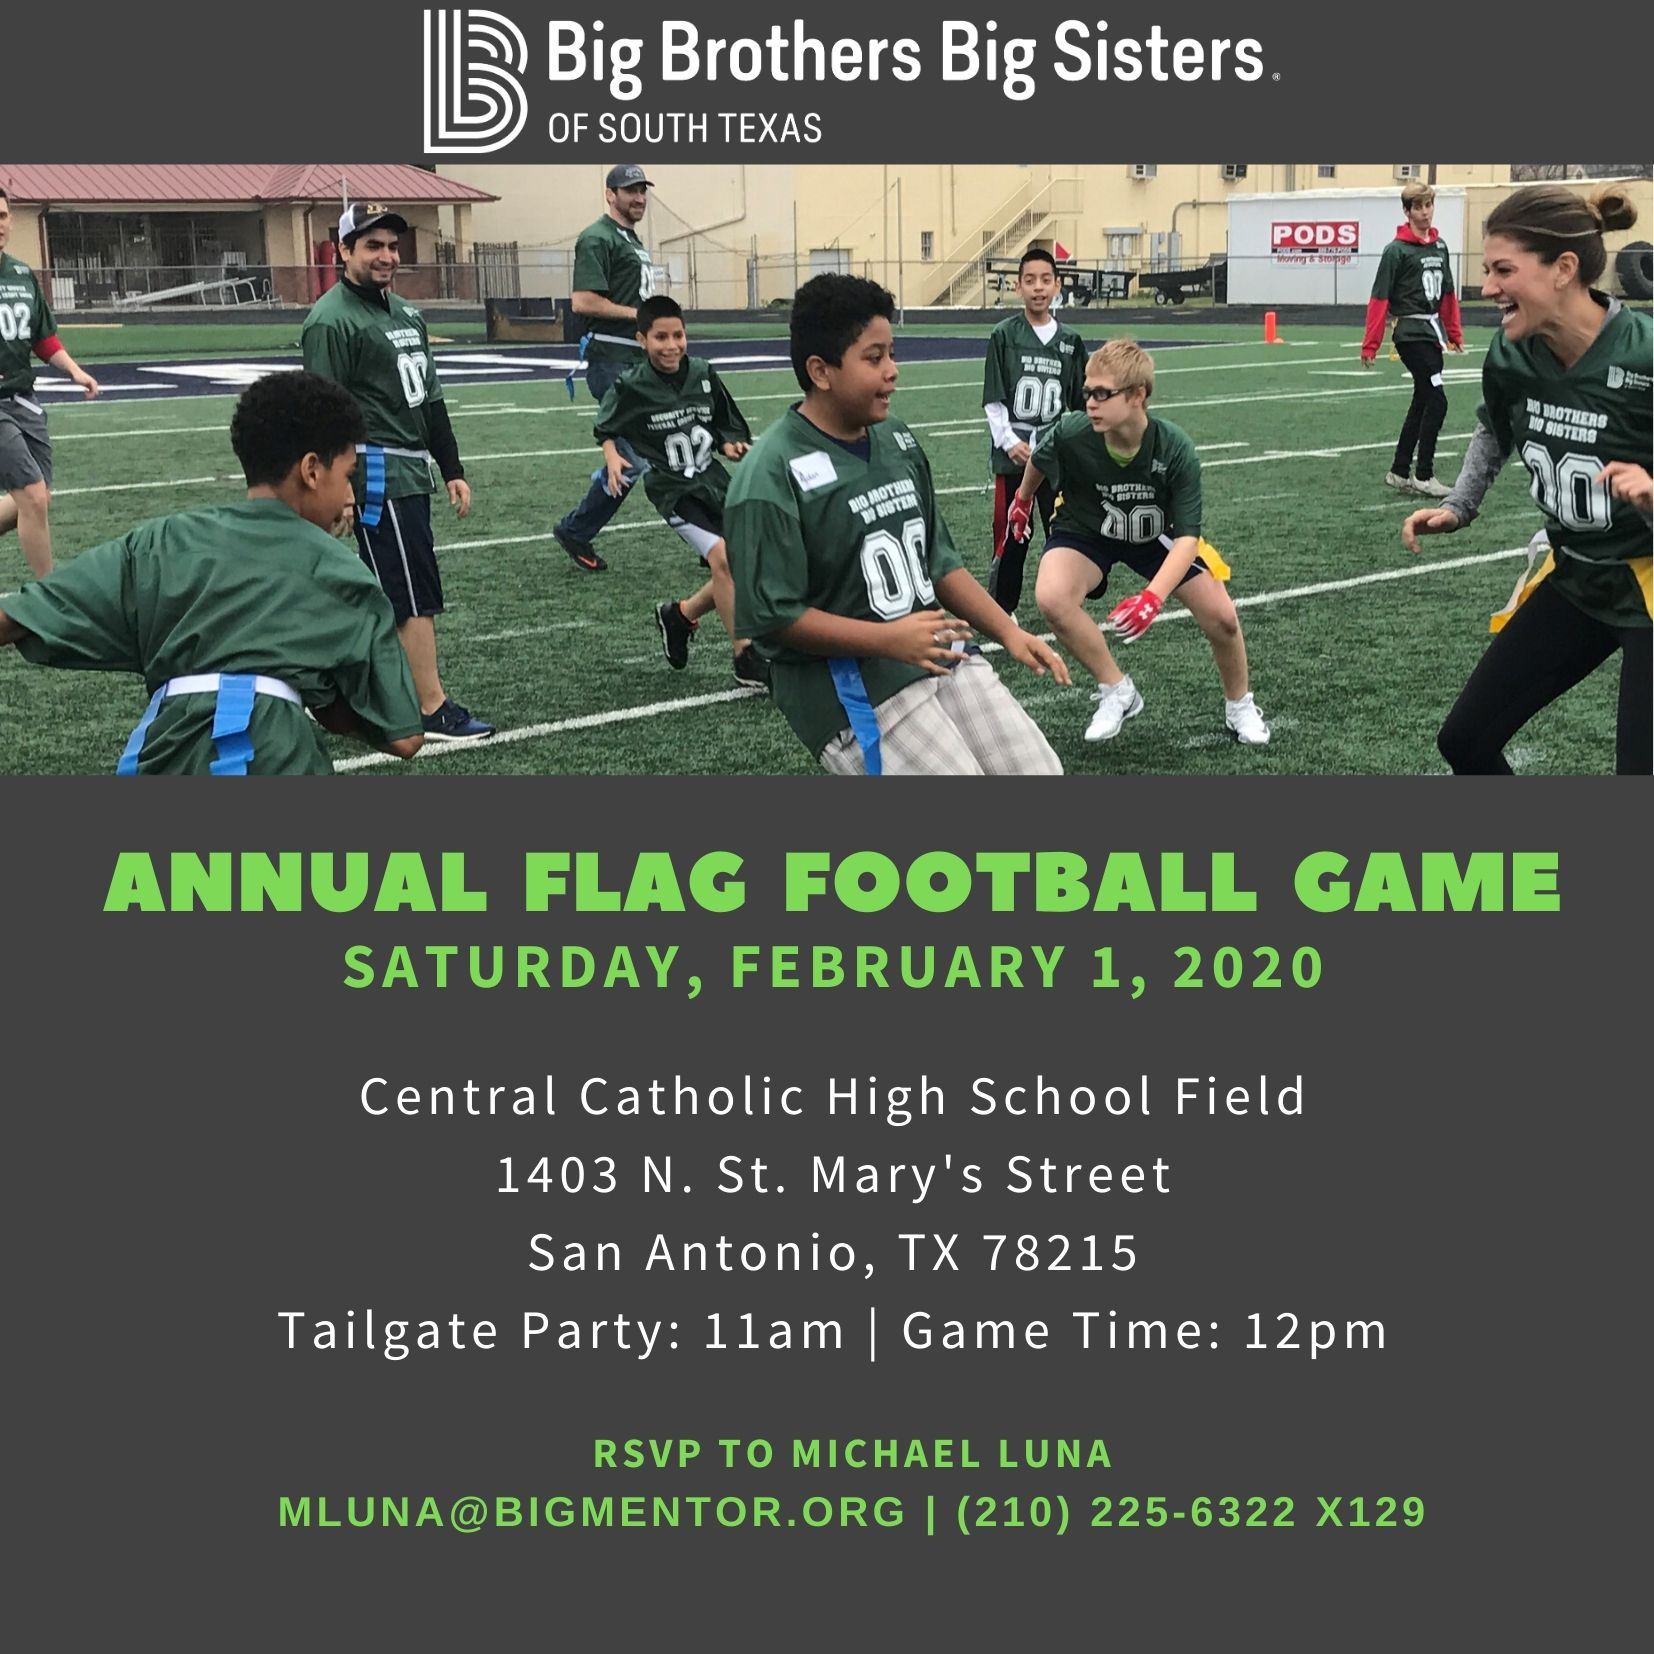 2020 bbbs flag football event graphic